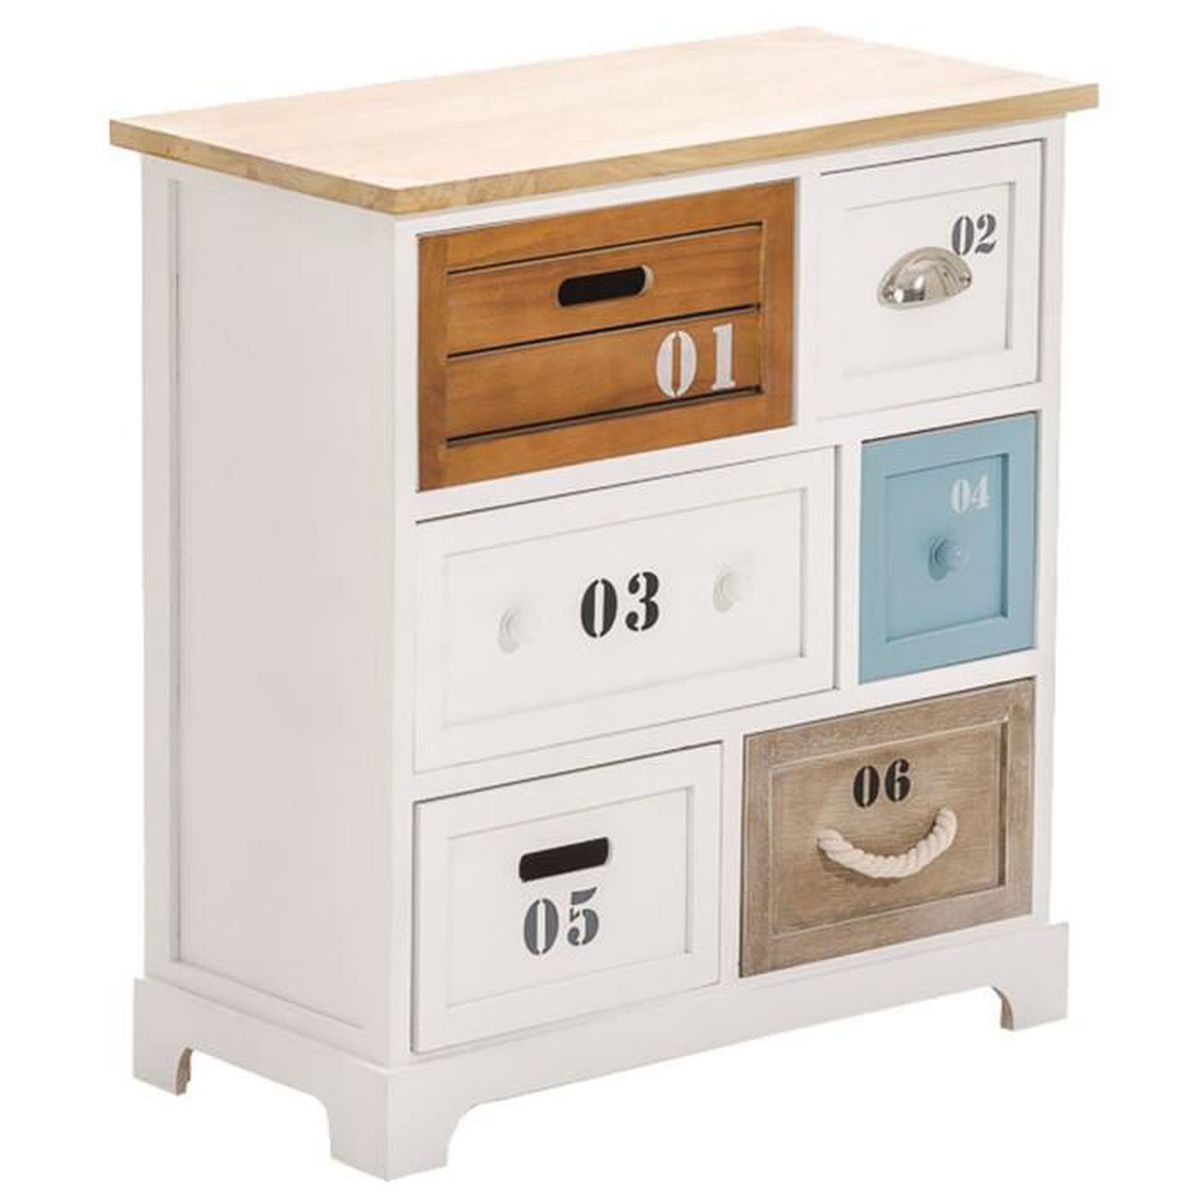 commode avec 6 tiroirs en bois blanc 65 5 x 60 x 30 cm achat vente commode de chambre. Black Bedroom Furniture Sets. Home Design Ideas